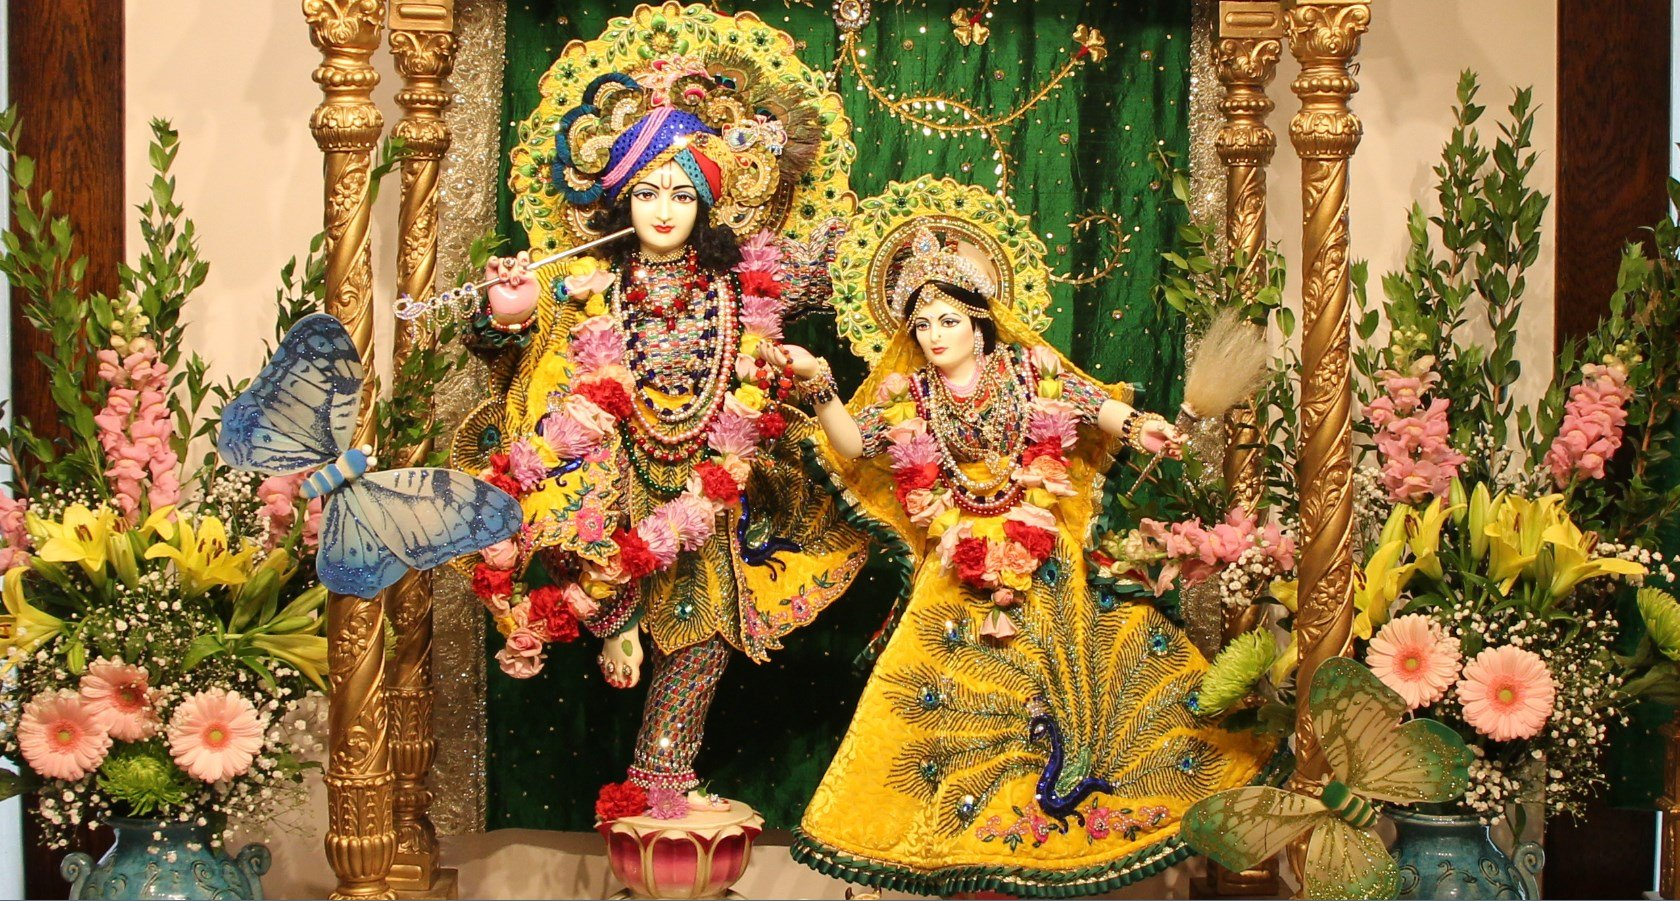 Iskcon devotee dating